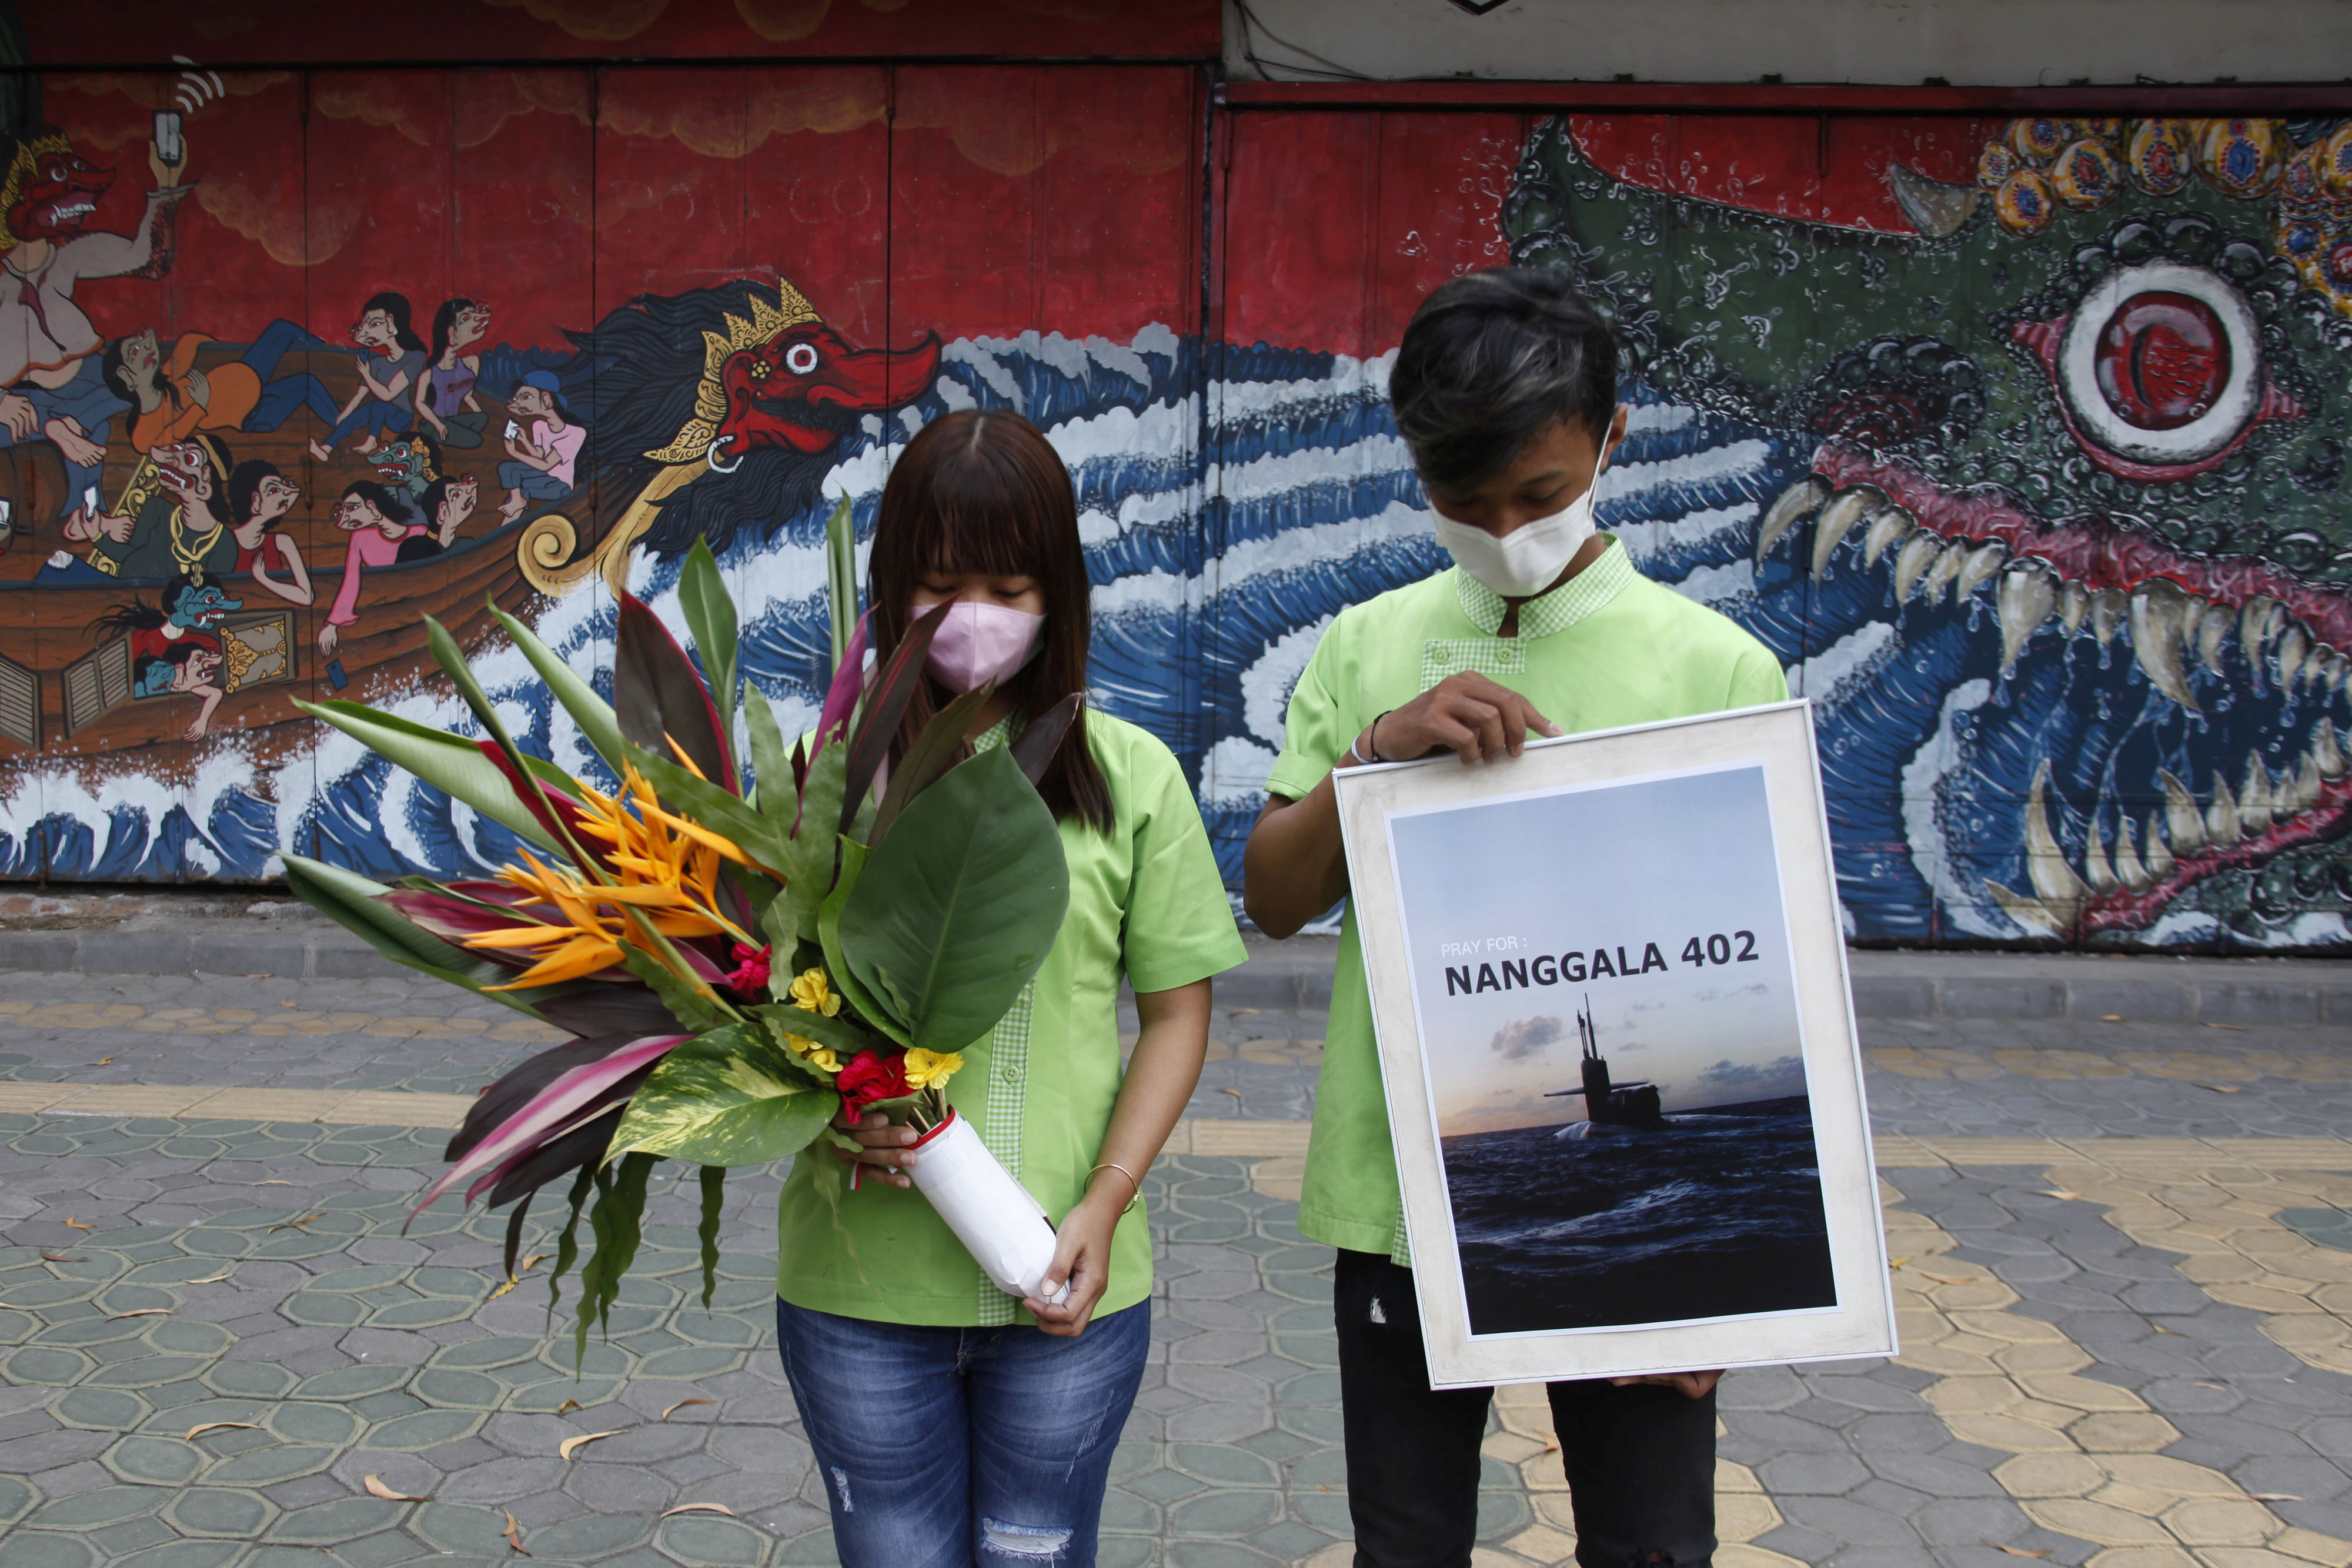 People holding a placard and flowers bow as they pray for the crew of submarine KRI Nanggala-402 which has sunk at the north of Bali sea, during a vigil in Solo, Central Java province, Indonesia, April 25, 2021 in this photo taken by Antara Foto.  Antara Foto/Maulana Surya/ via REUTERS